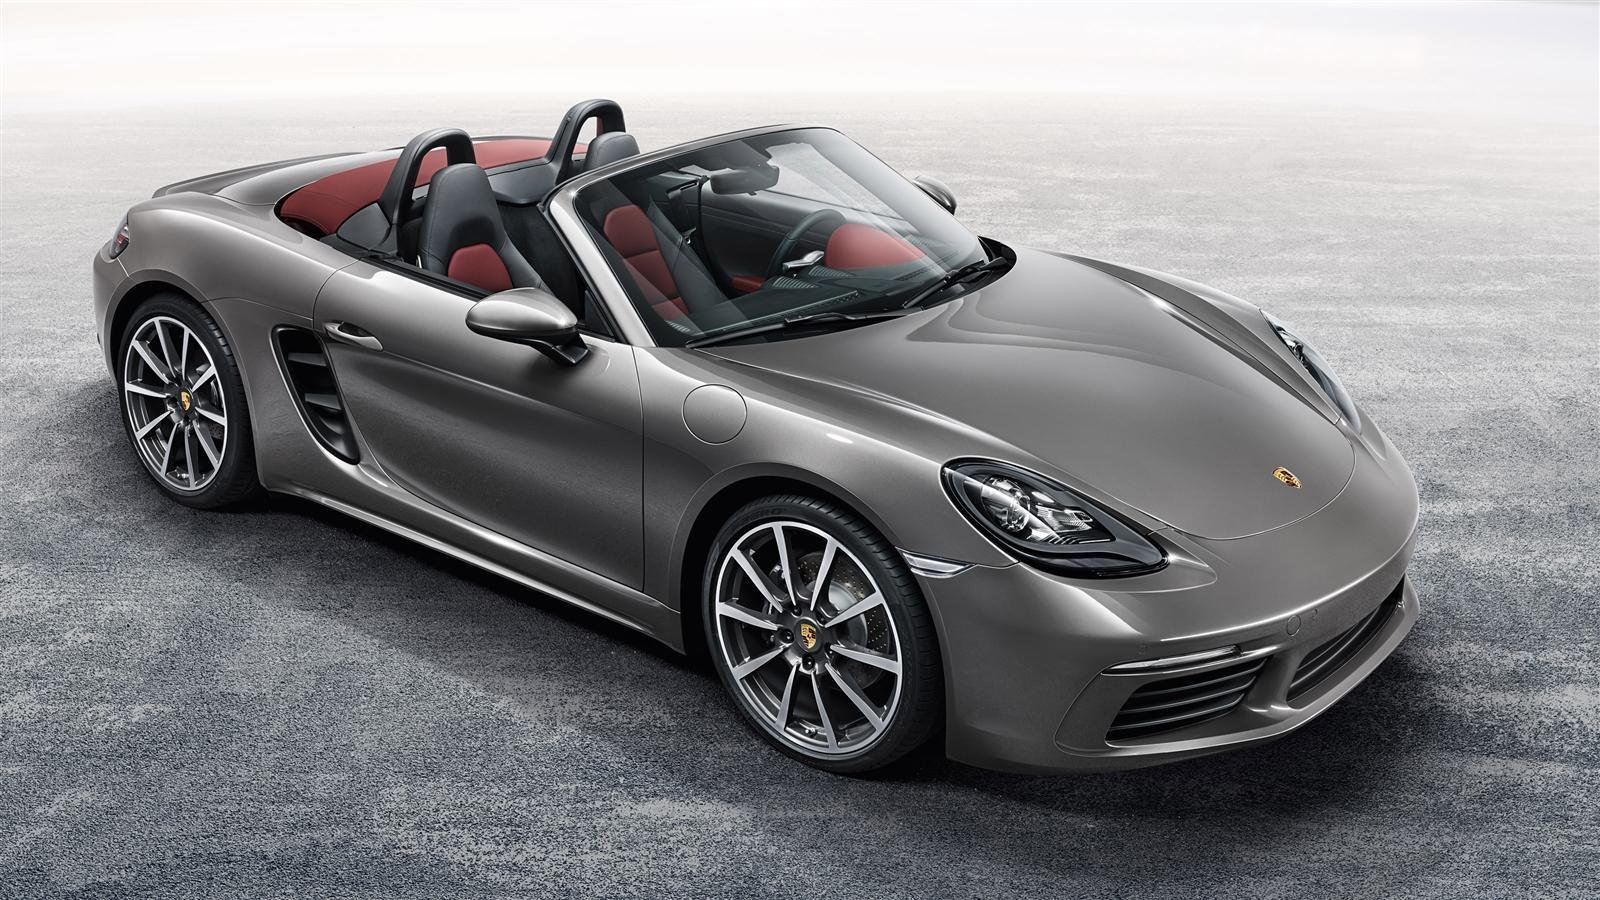 2017 porsche 718 boxster picture 663465 car review top speed. Black Bedroom Furniture Sets. Home Design Ideas